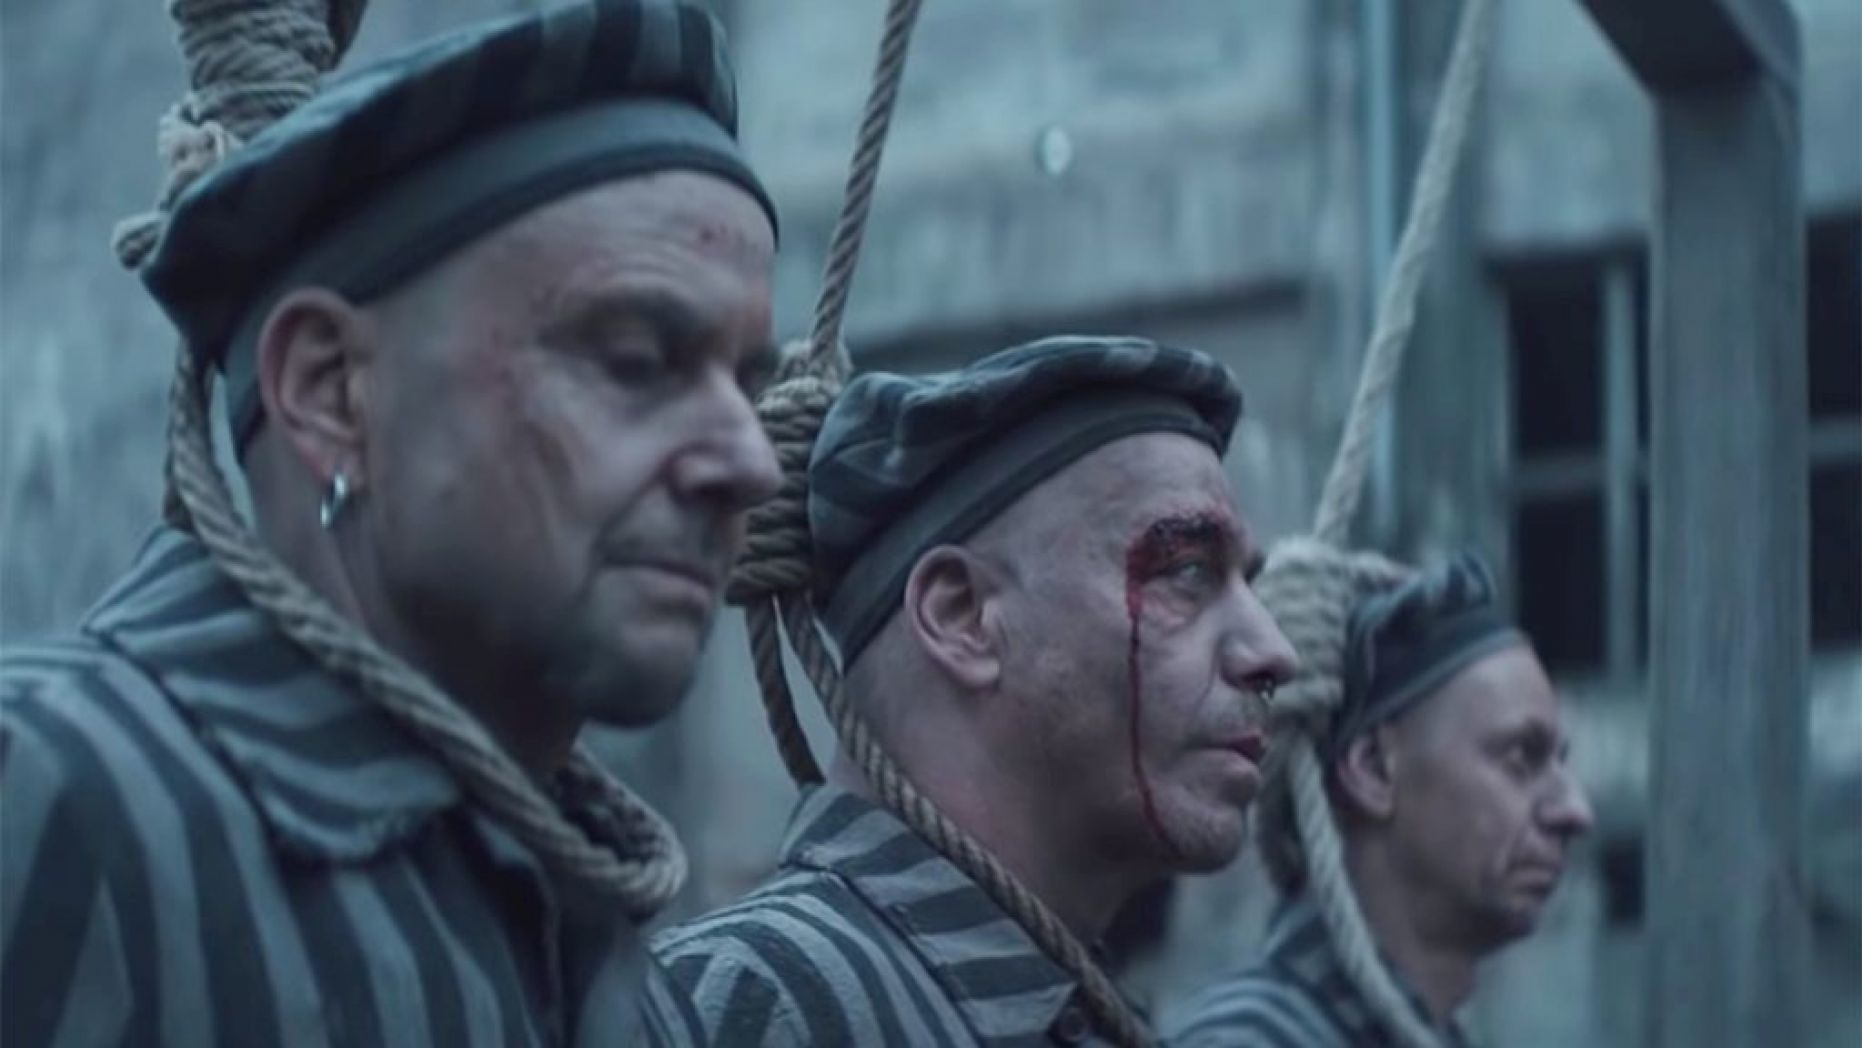 German band Rammstein dressed as Nazi concentration camp prisoners in new video for Deutschland